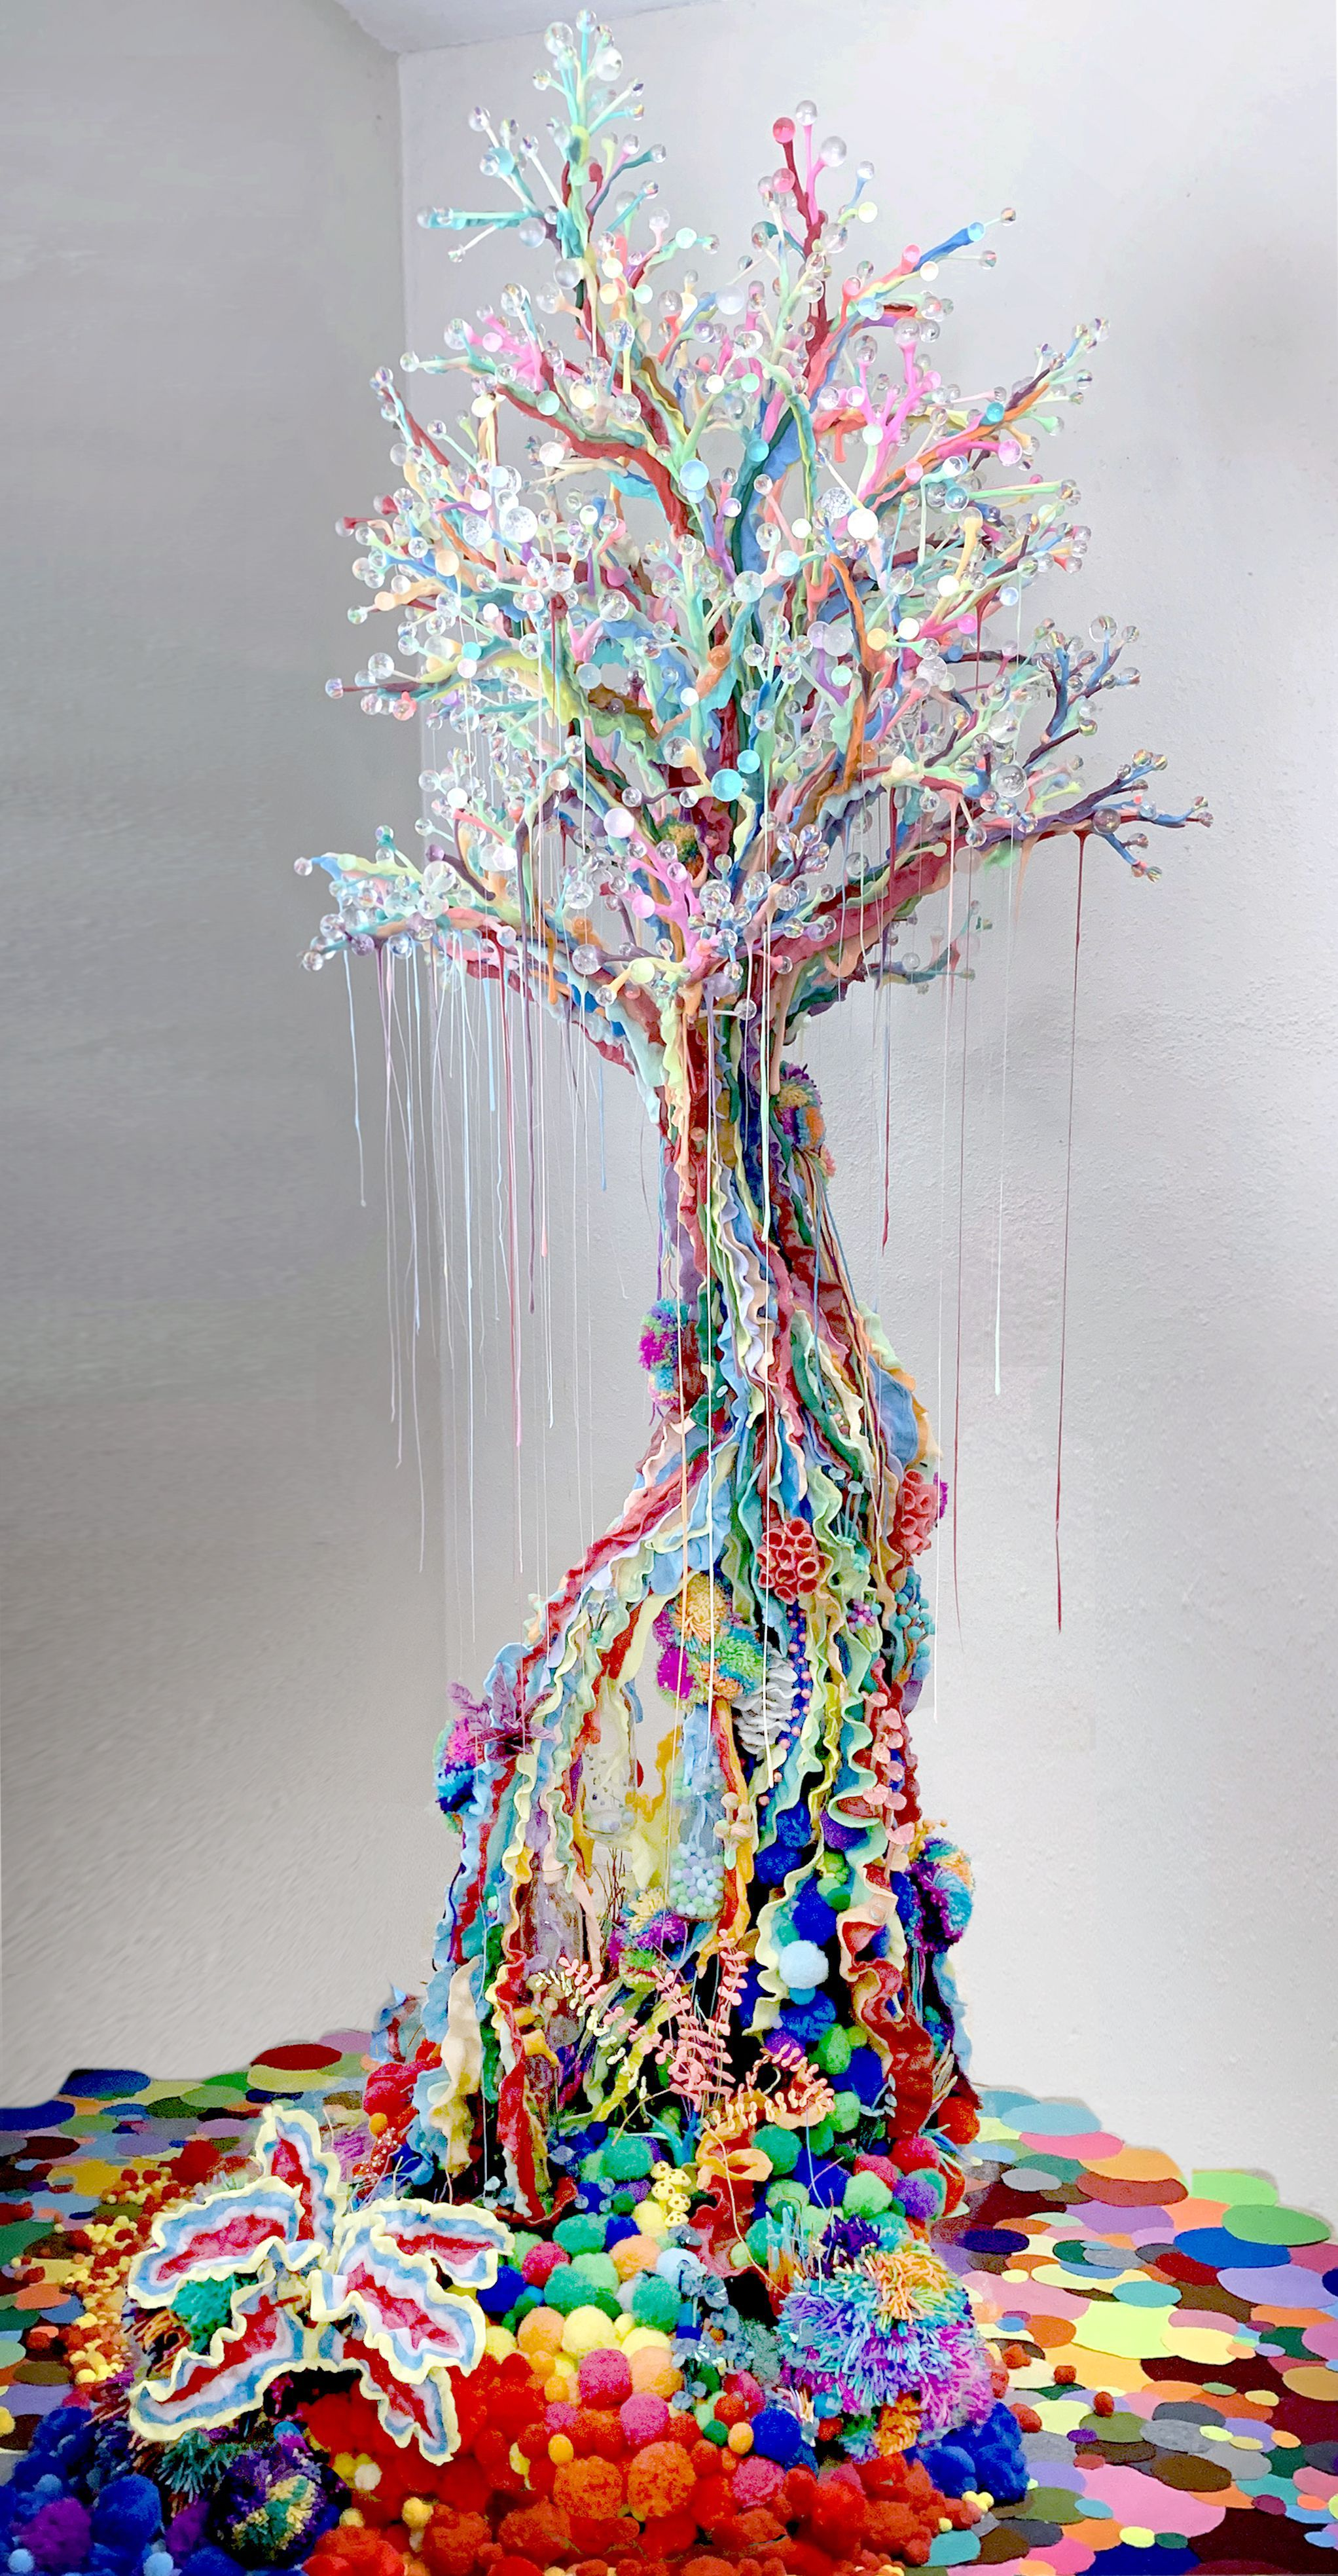 A colorful sculptural tree made out of pom-poms, resin, yarn, clay, and recycled materials.